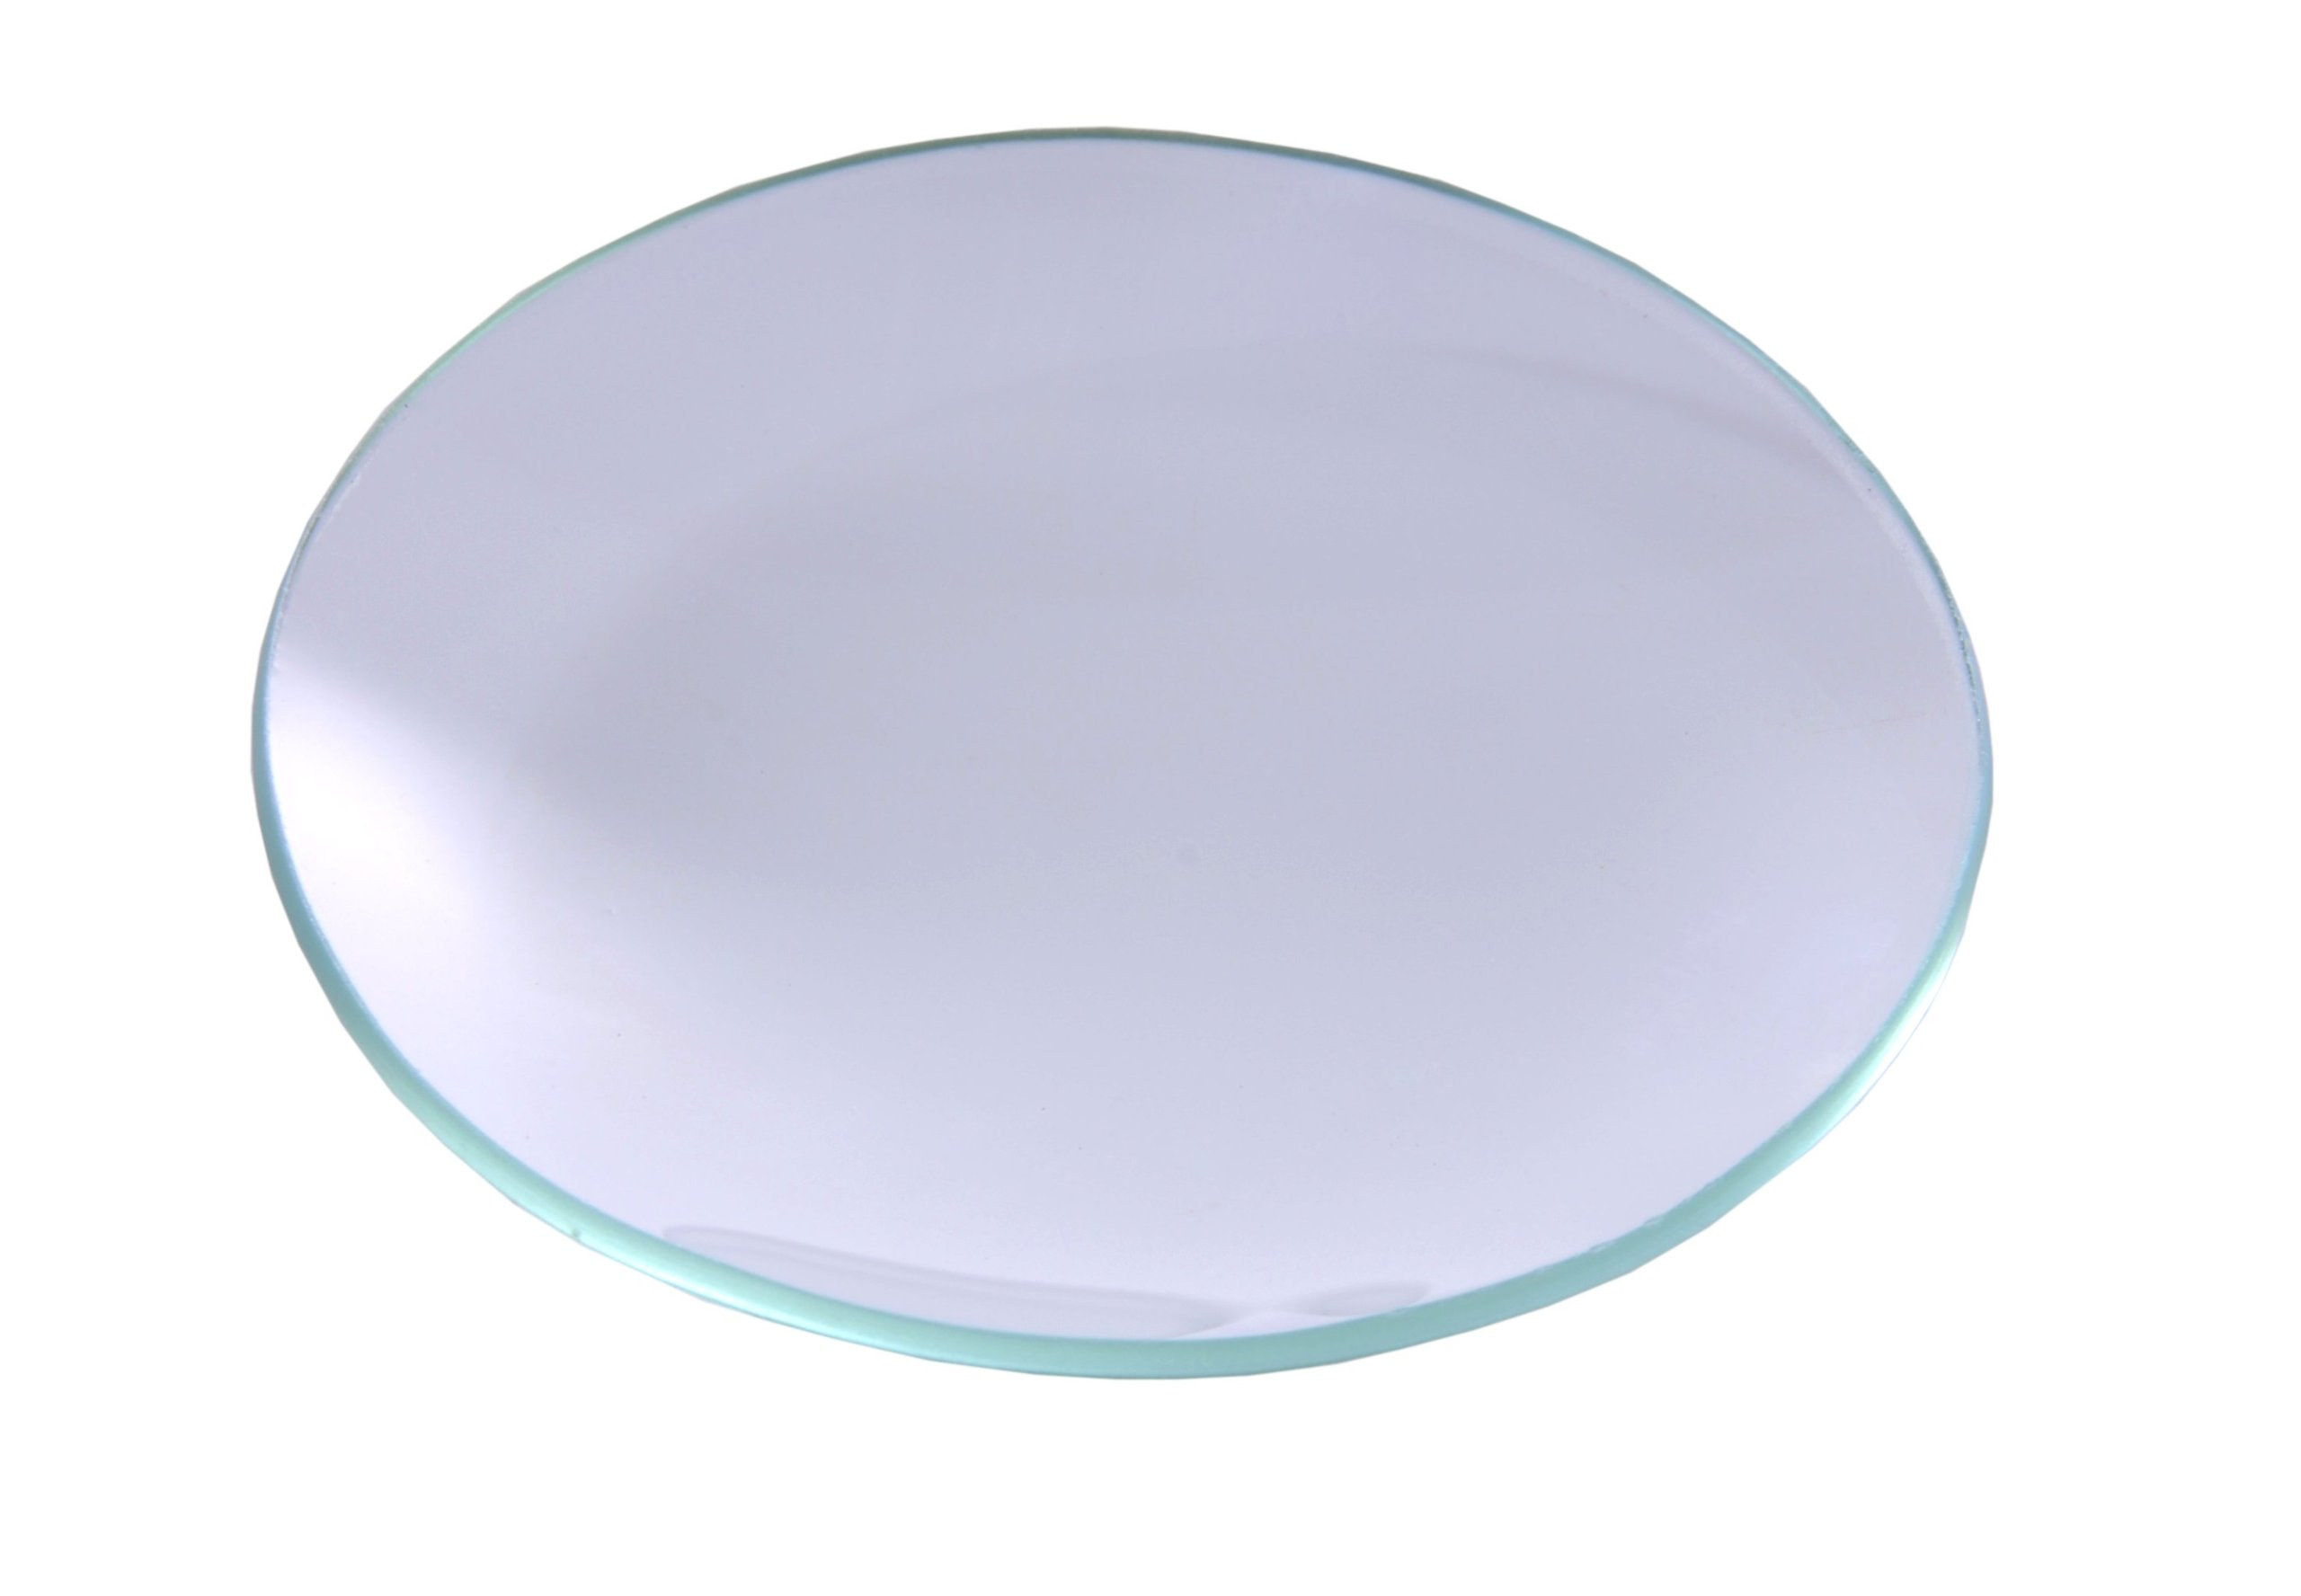 American Educational Polished Edges Soda Lime Watch Glass 60mm Diameter